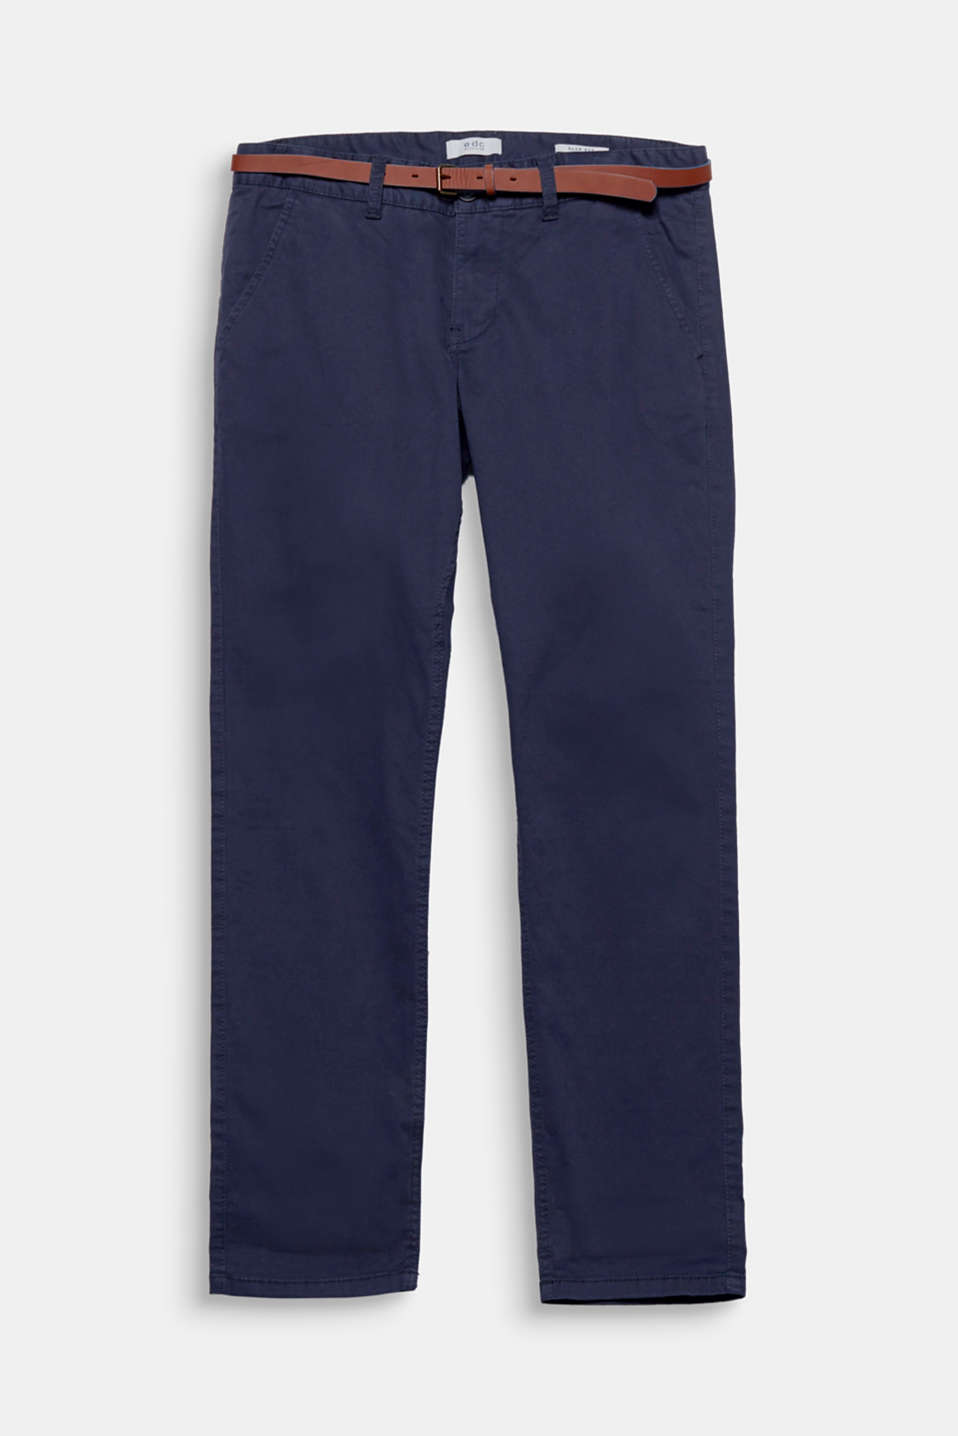 Your everyday favourite! A narrow faux leather belt rounds off these classic chinos.